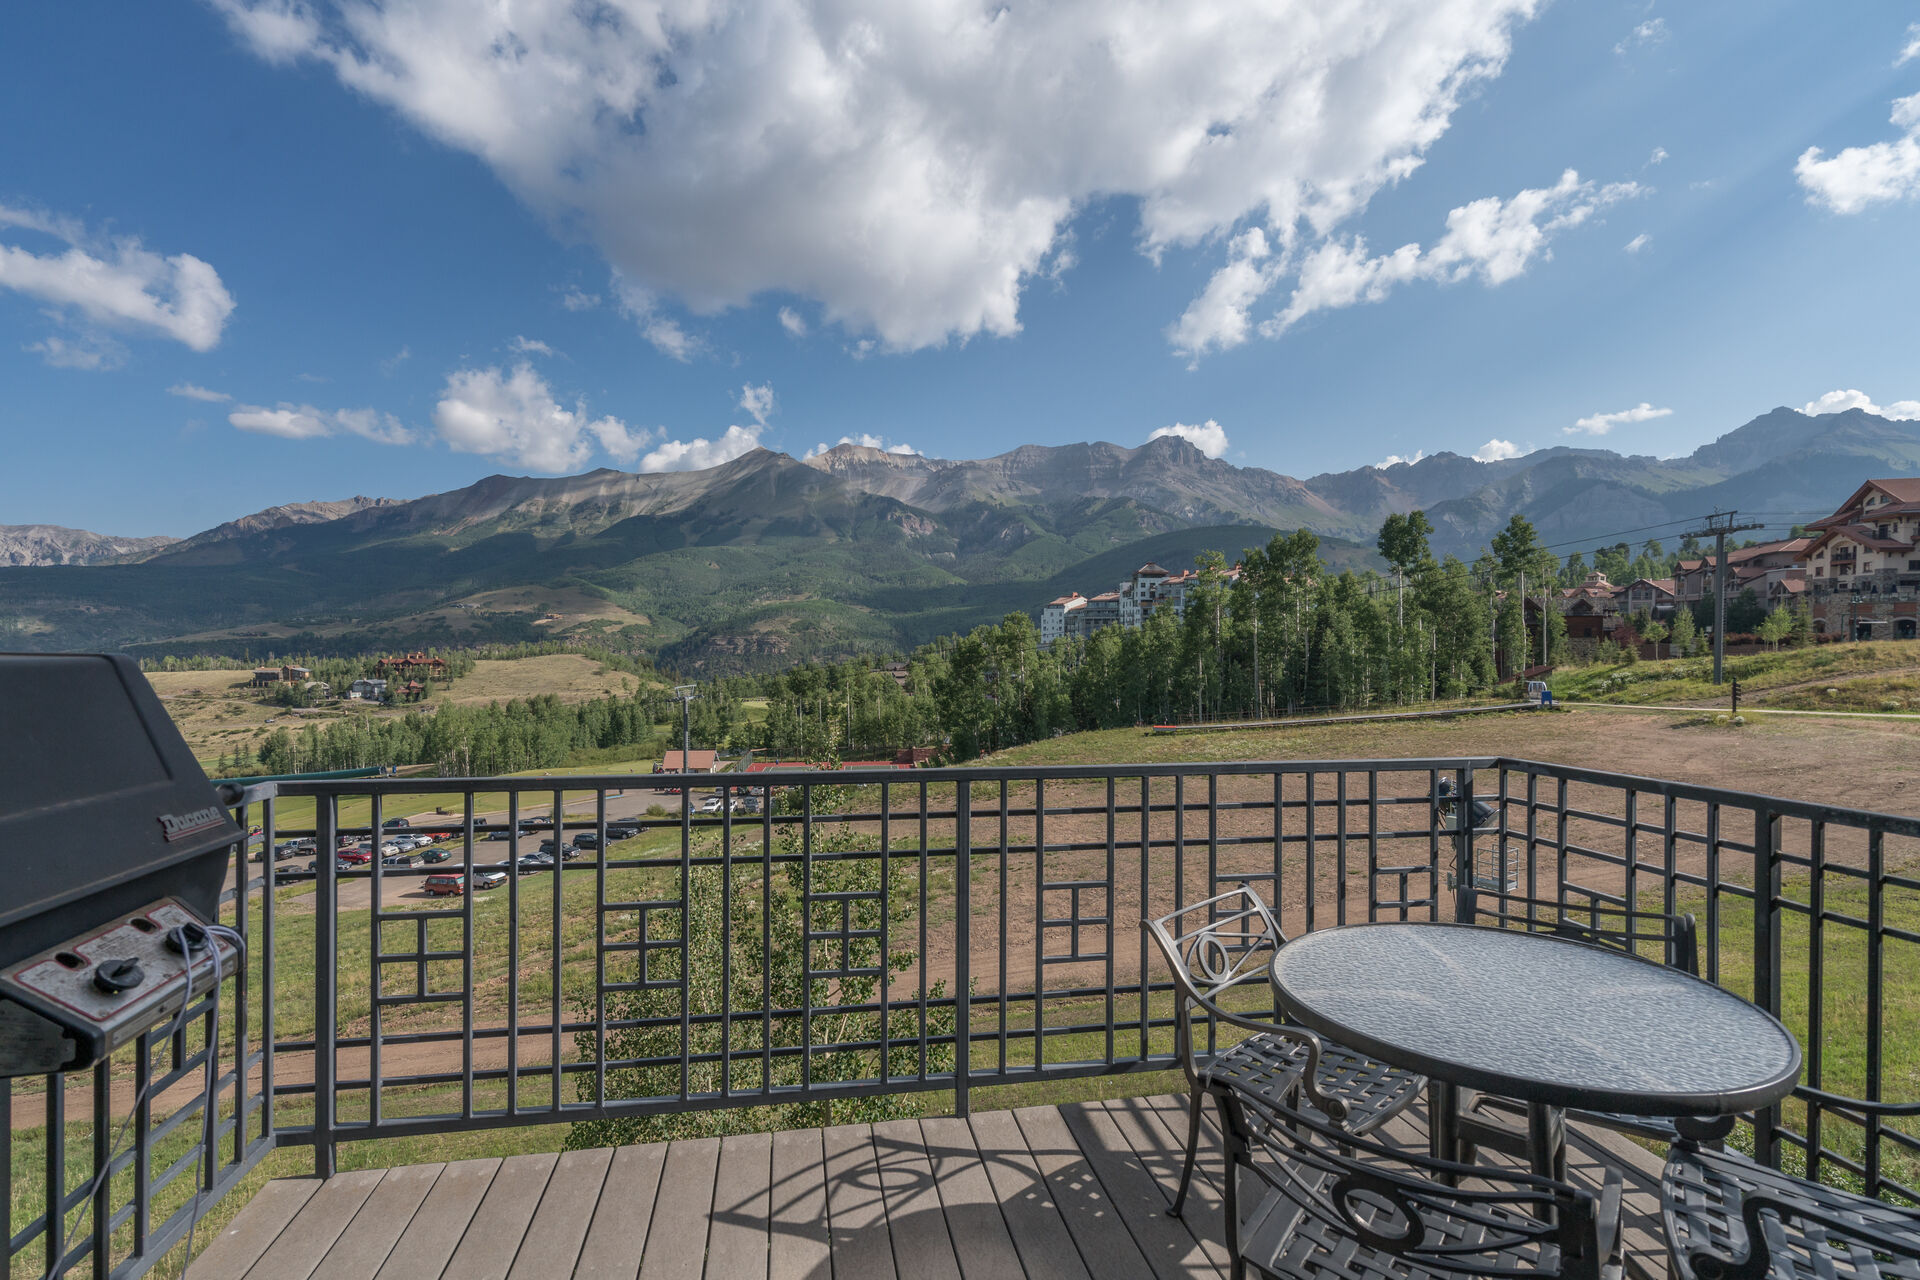 Outdoor seating at this mountain village condo.